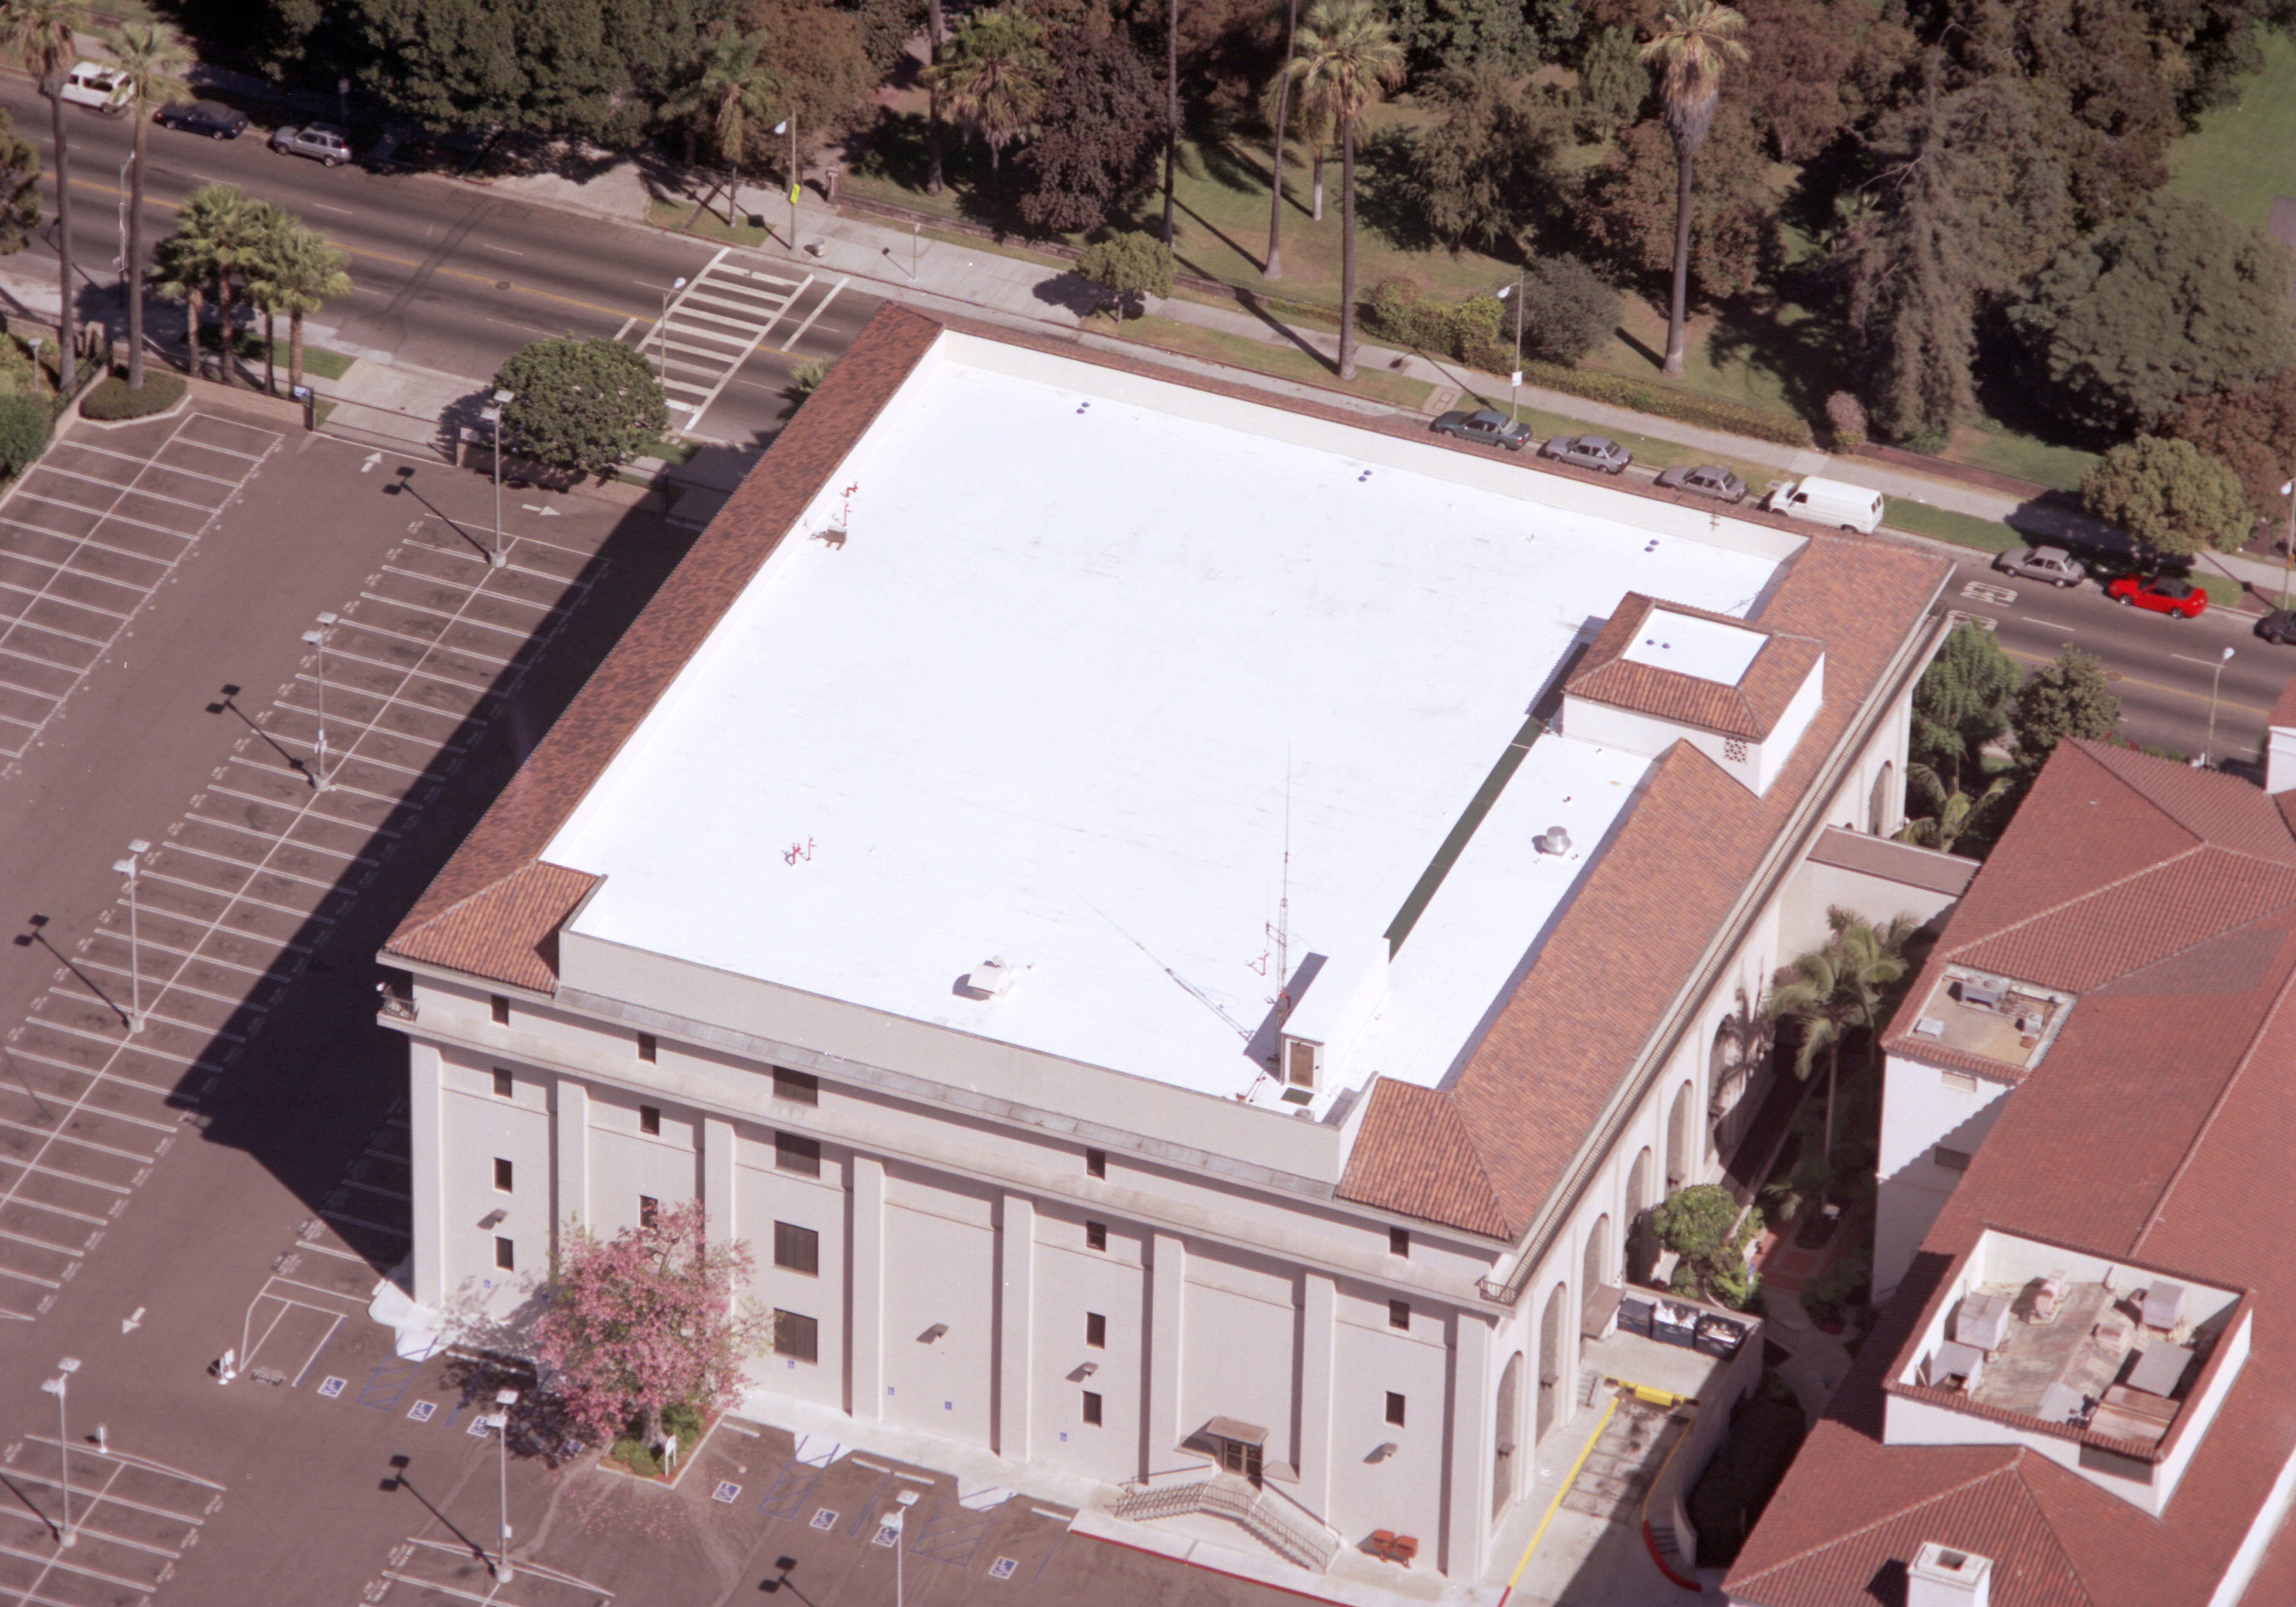 Flat Roof In Los Angeles Flat Roof House Flat Roof Installation Flat Roof